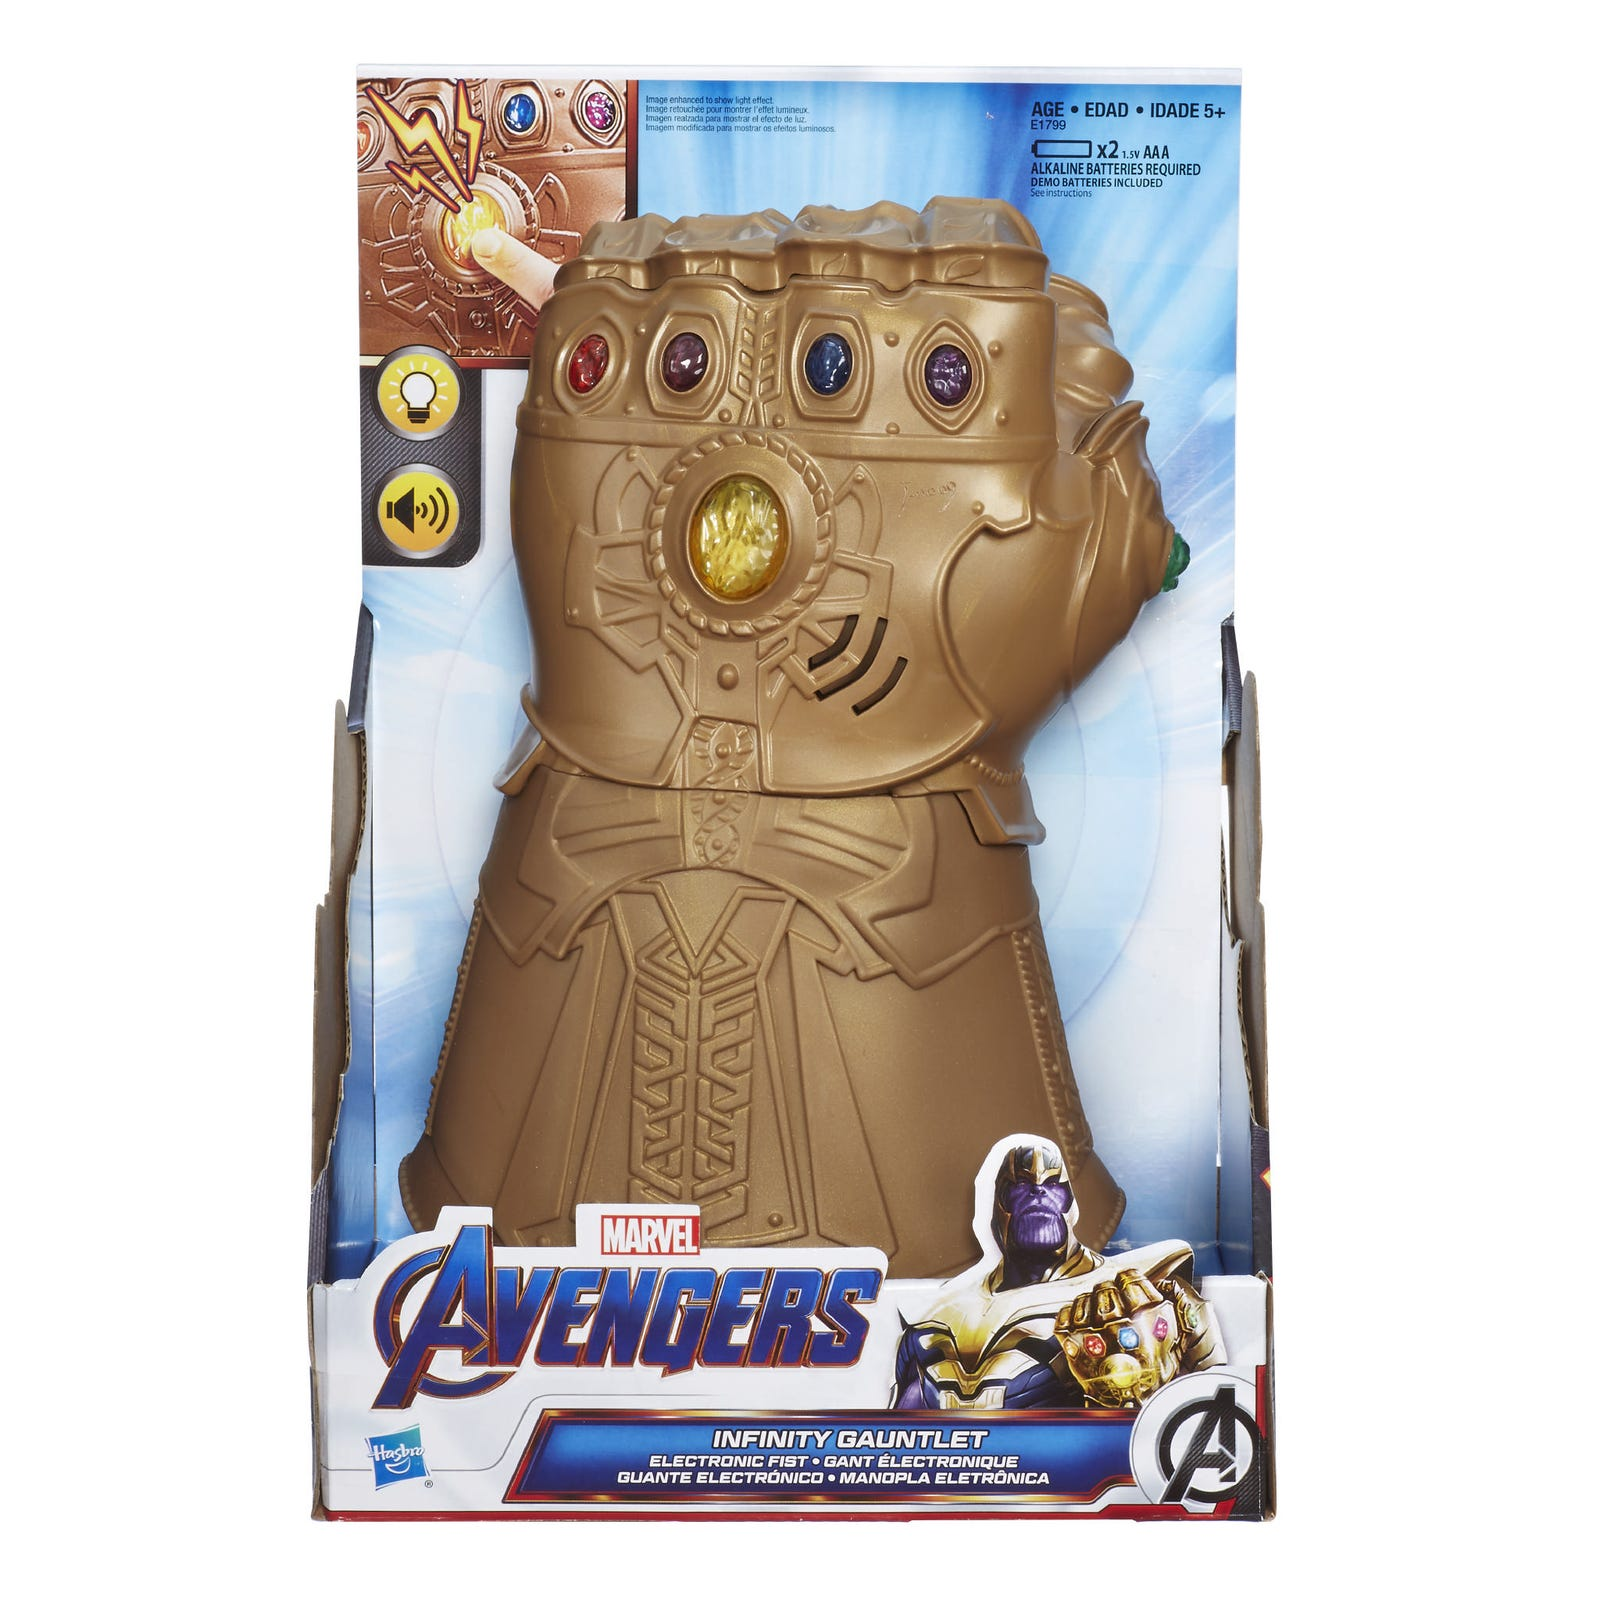 This Gauntlet is identical to the one released last year, which, while understandable, is kind of rude. Why not sell kids a busted up version like the one we've actually seen in the trailer? Kids like broken clumps of metal with gems that don't light up any more, right?